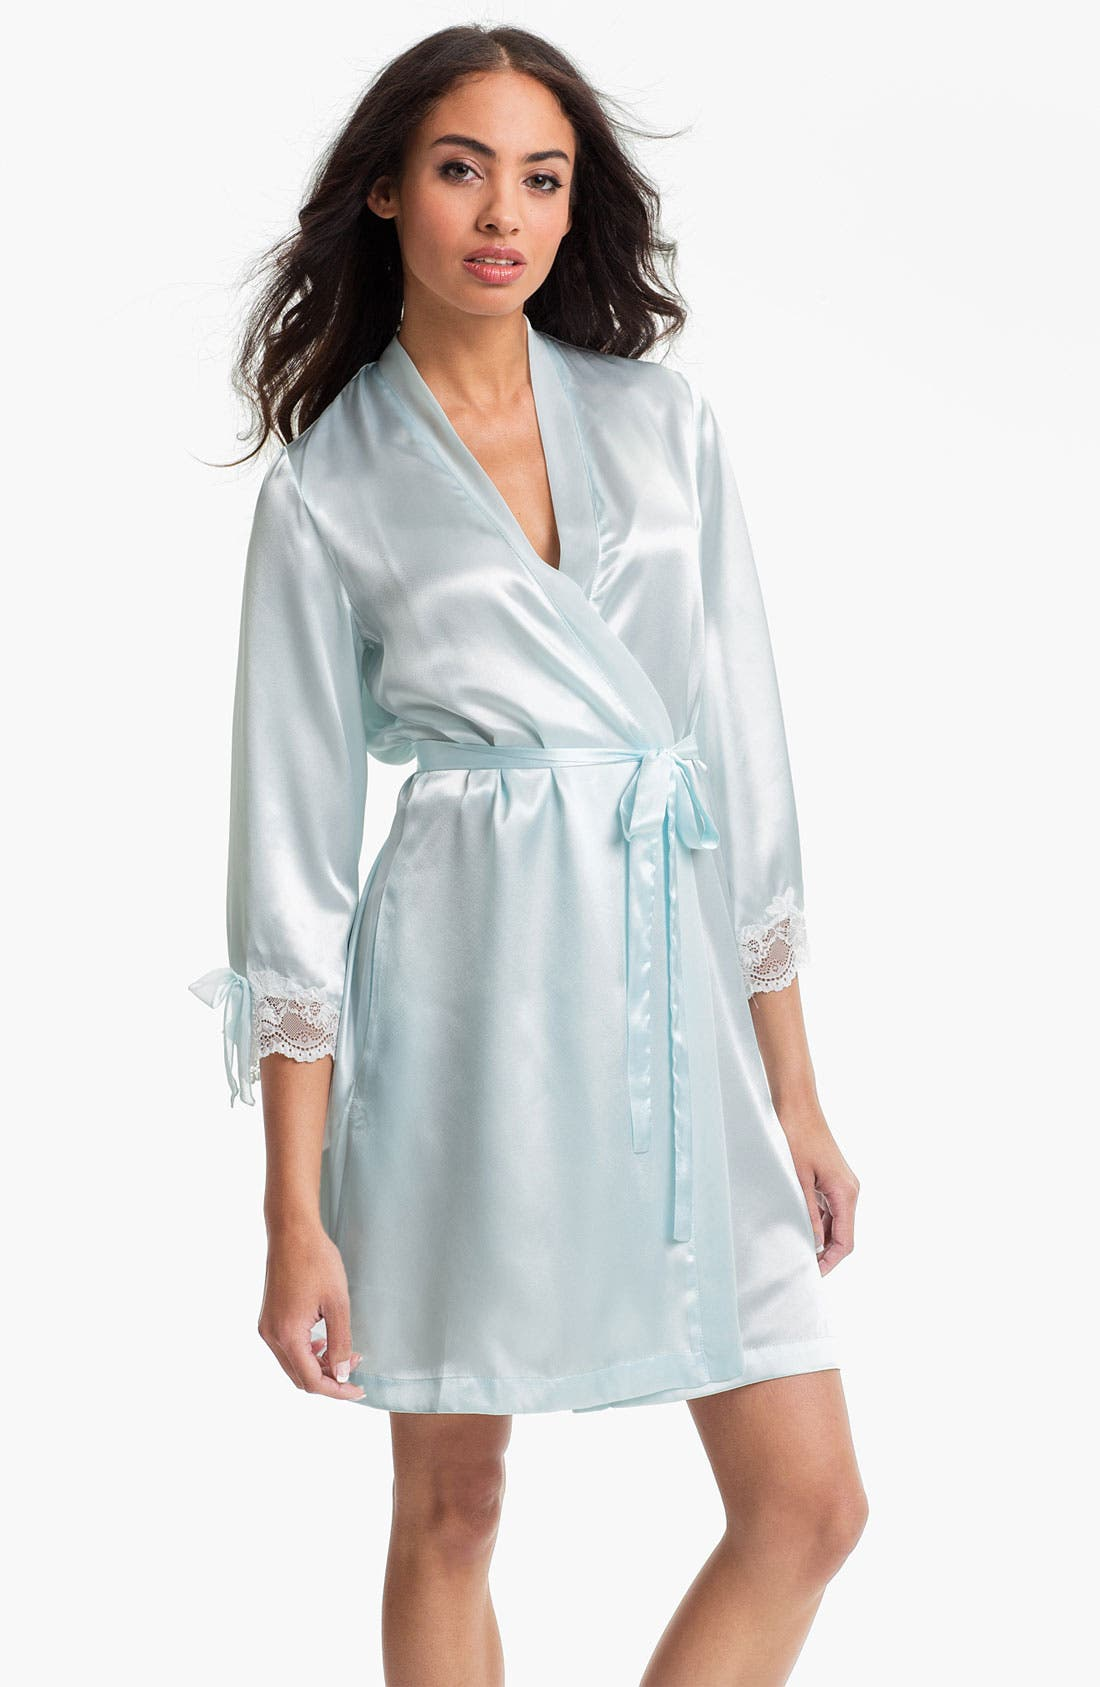 Alternate Image 1 Selected - Oscar de la Renta Sleepwear 'Lovely in Lace' Short Robe